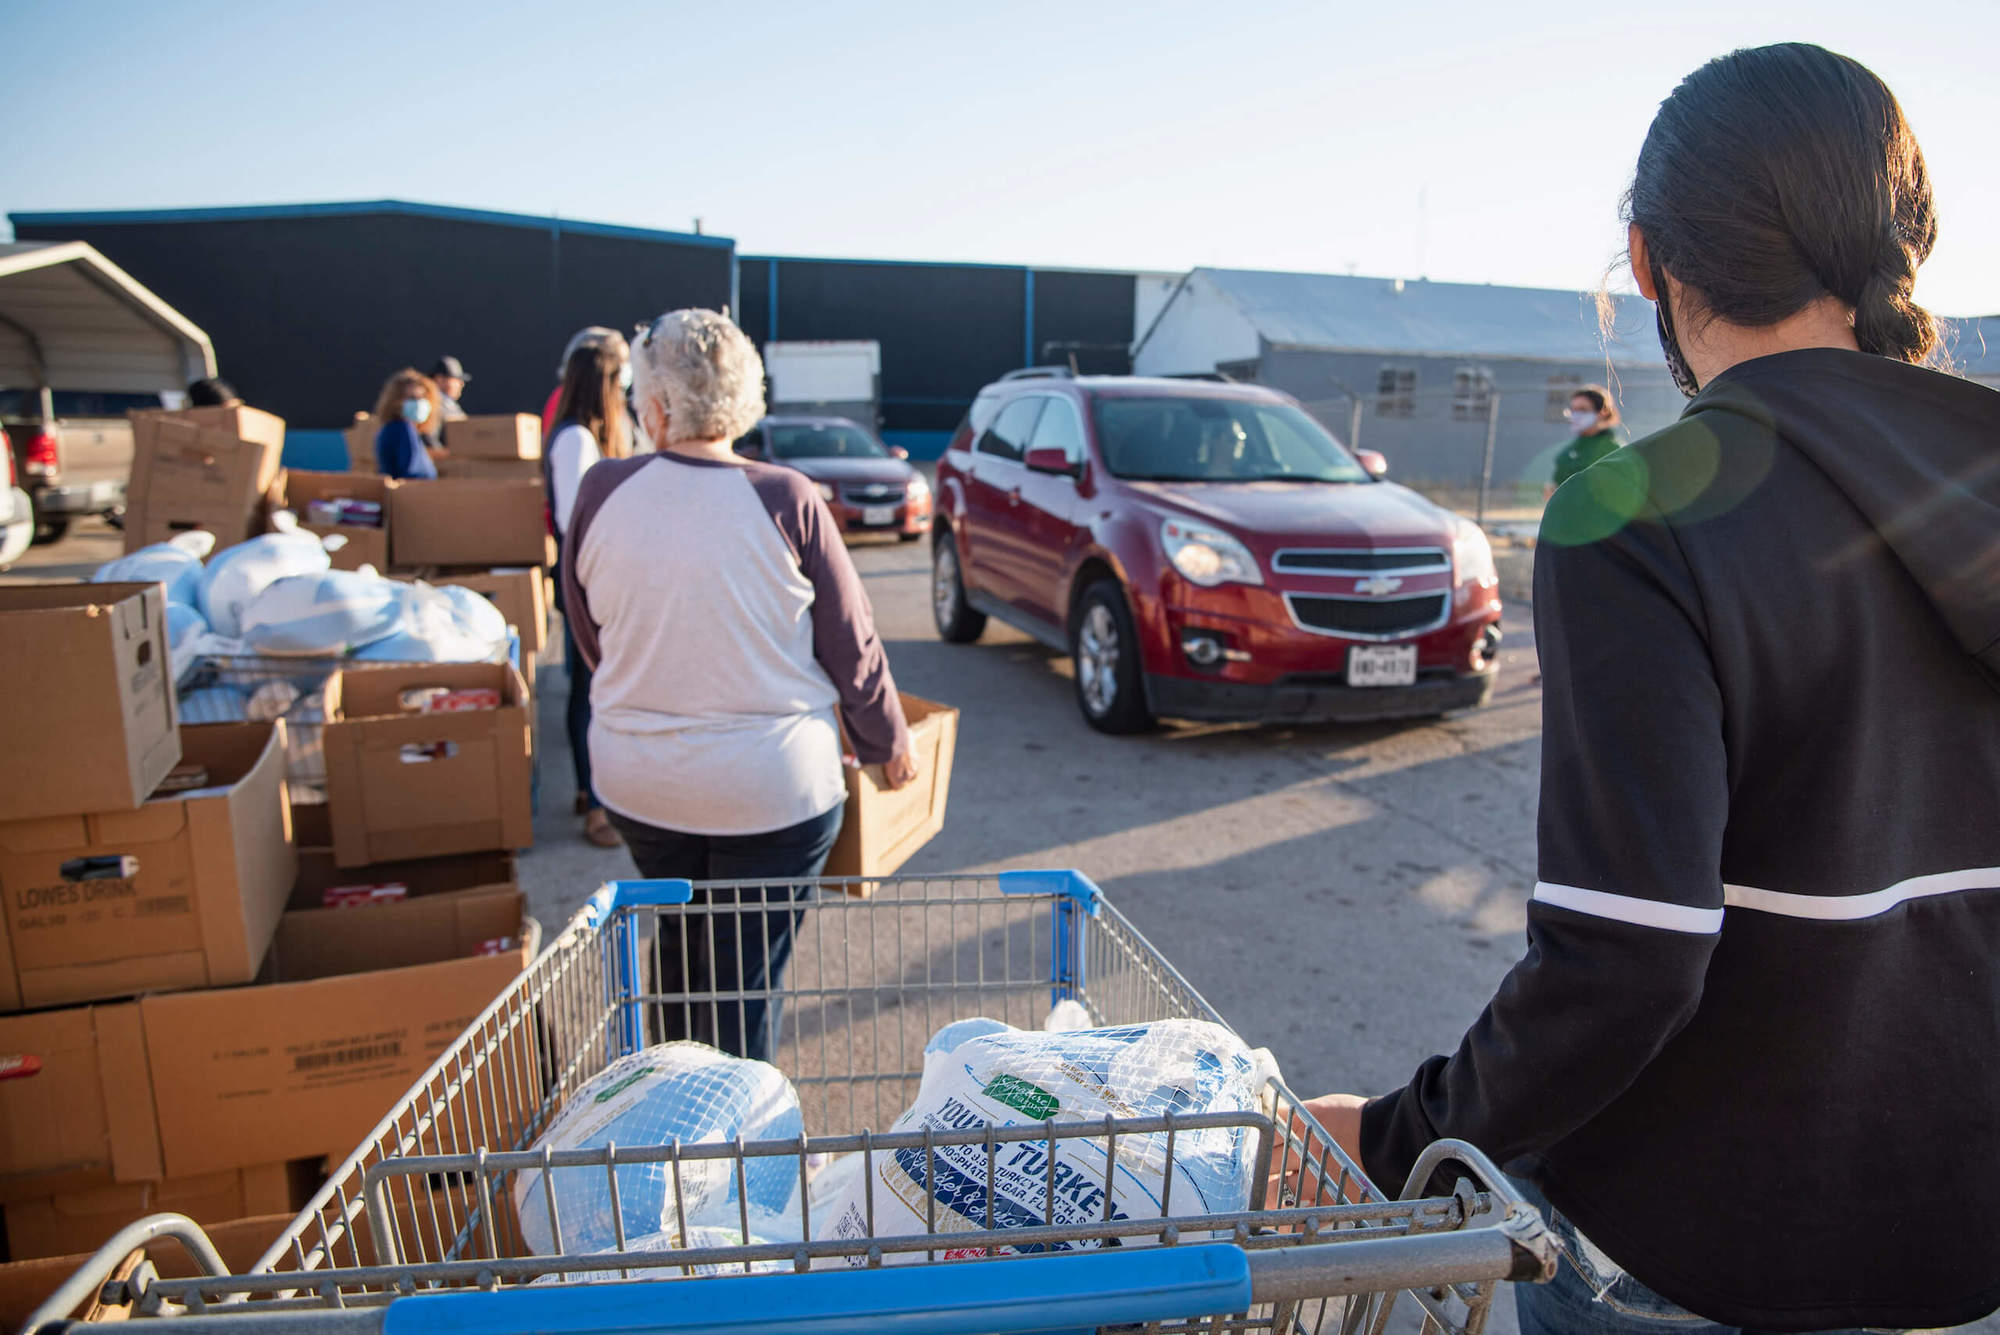 Volunteers wait to distribute food boxes on Friday, Nov. 20, 2020 in Odessa, Texas.